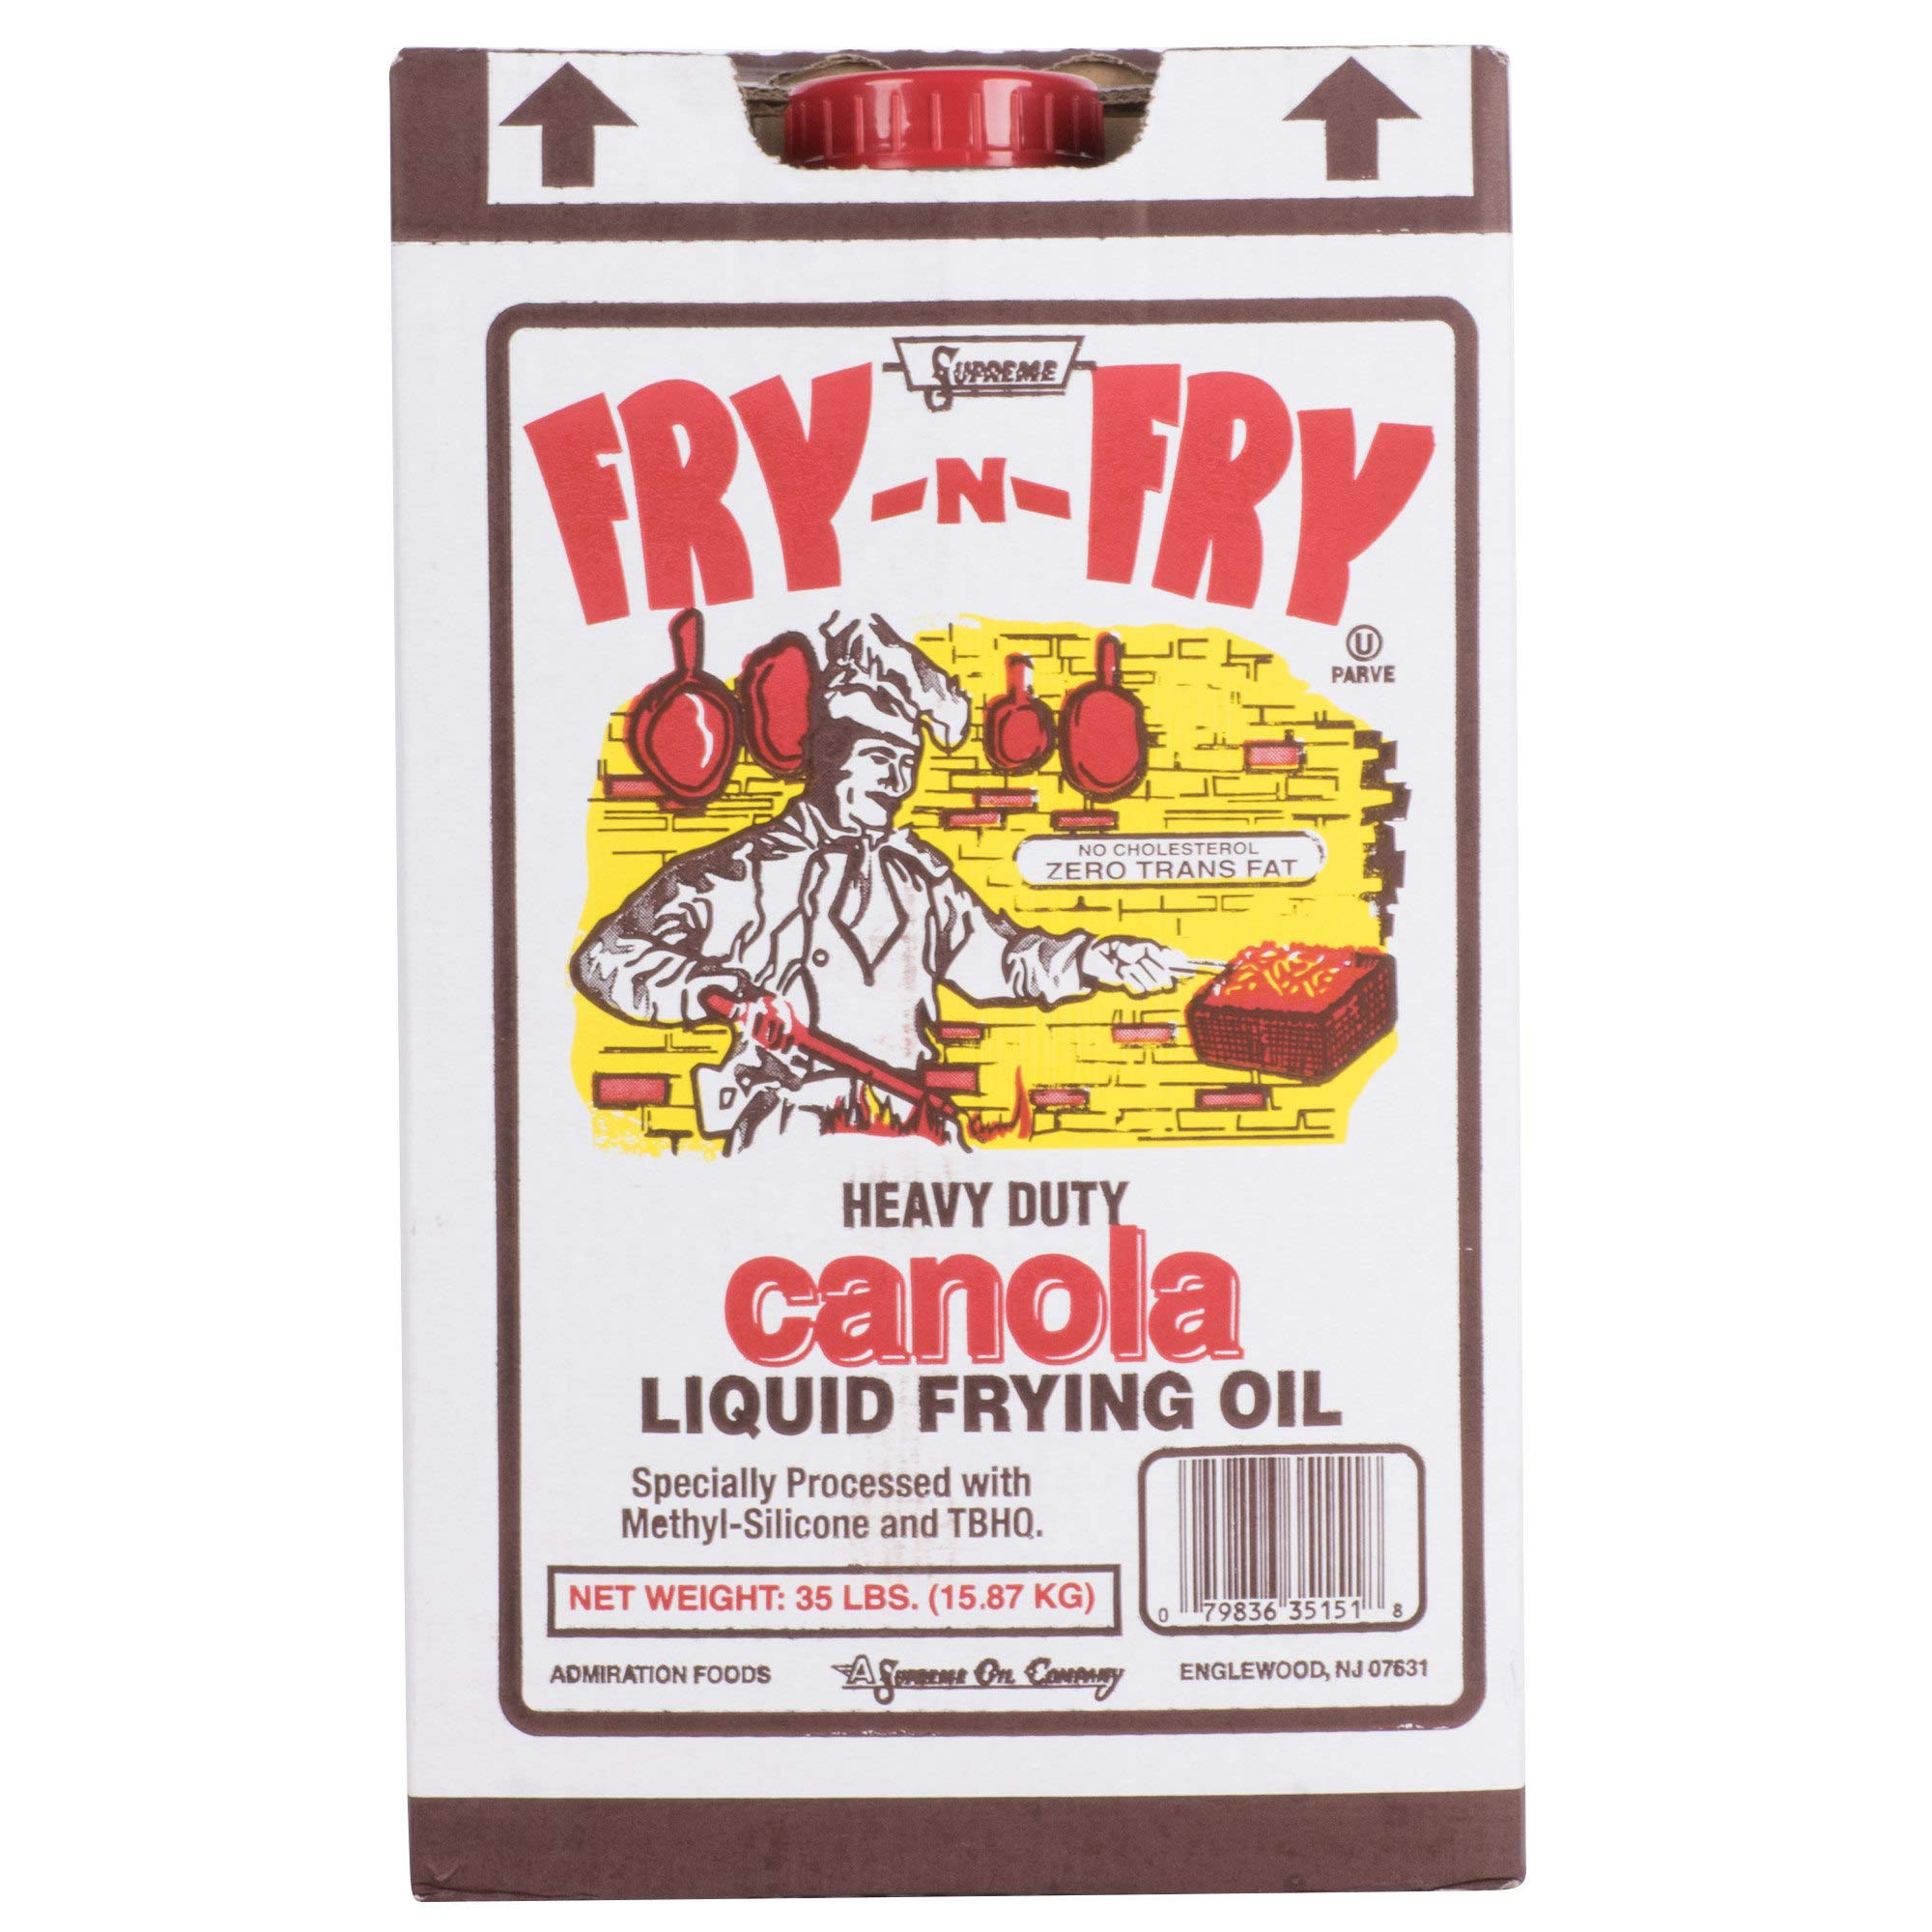 TableTop King Admiration Canola Frying Oil - 35 lb. by TableTop King